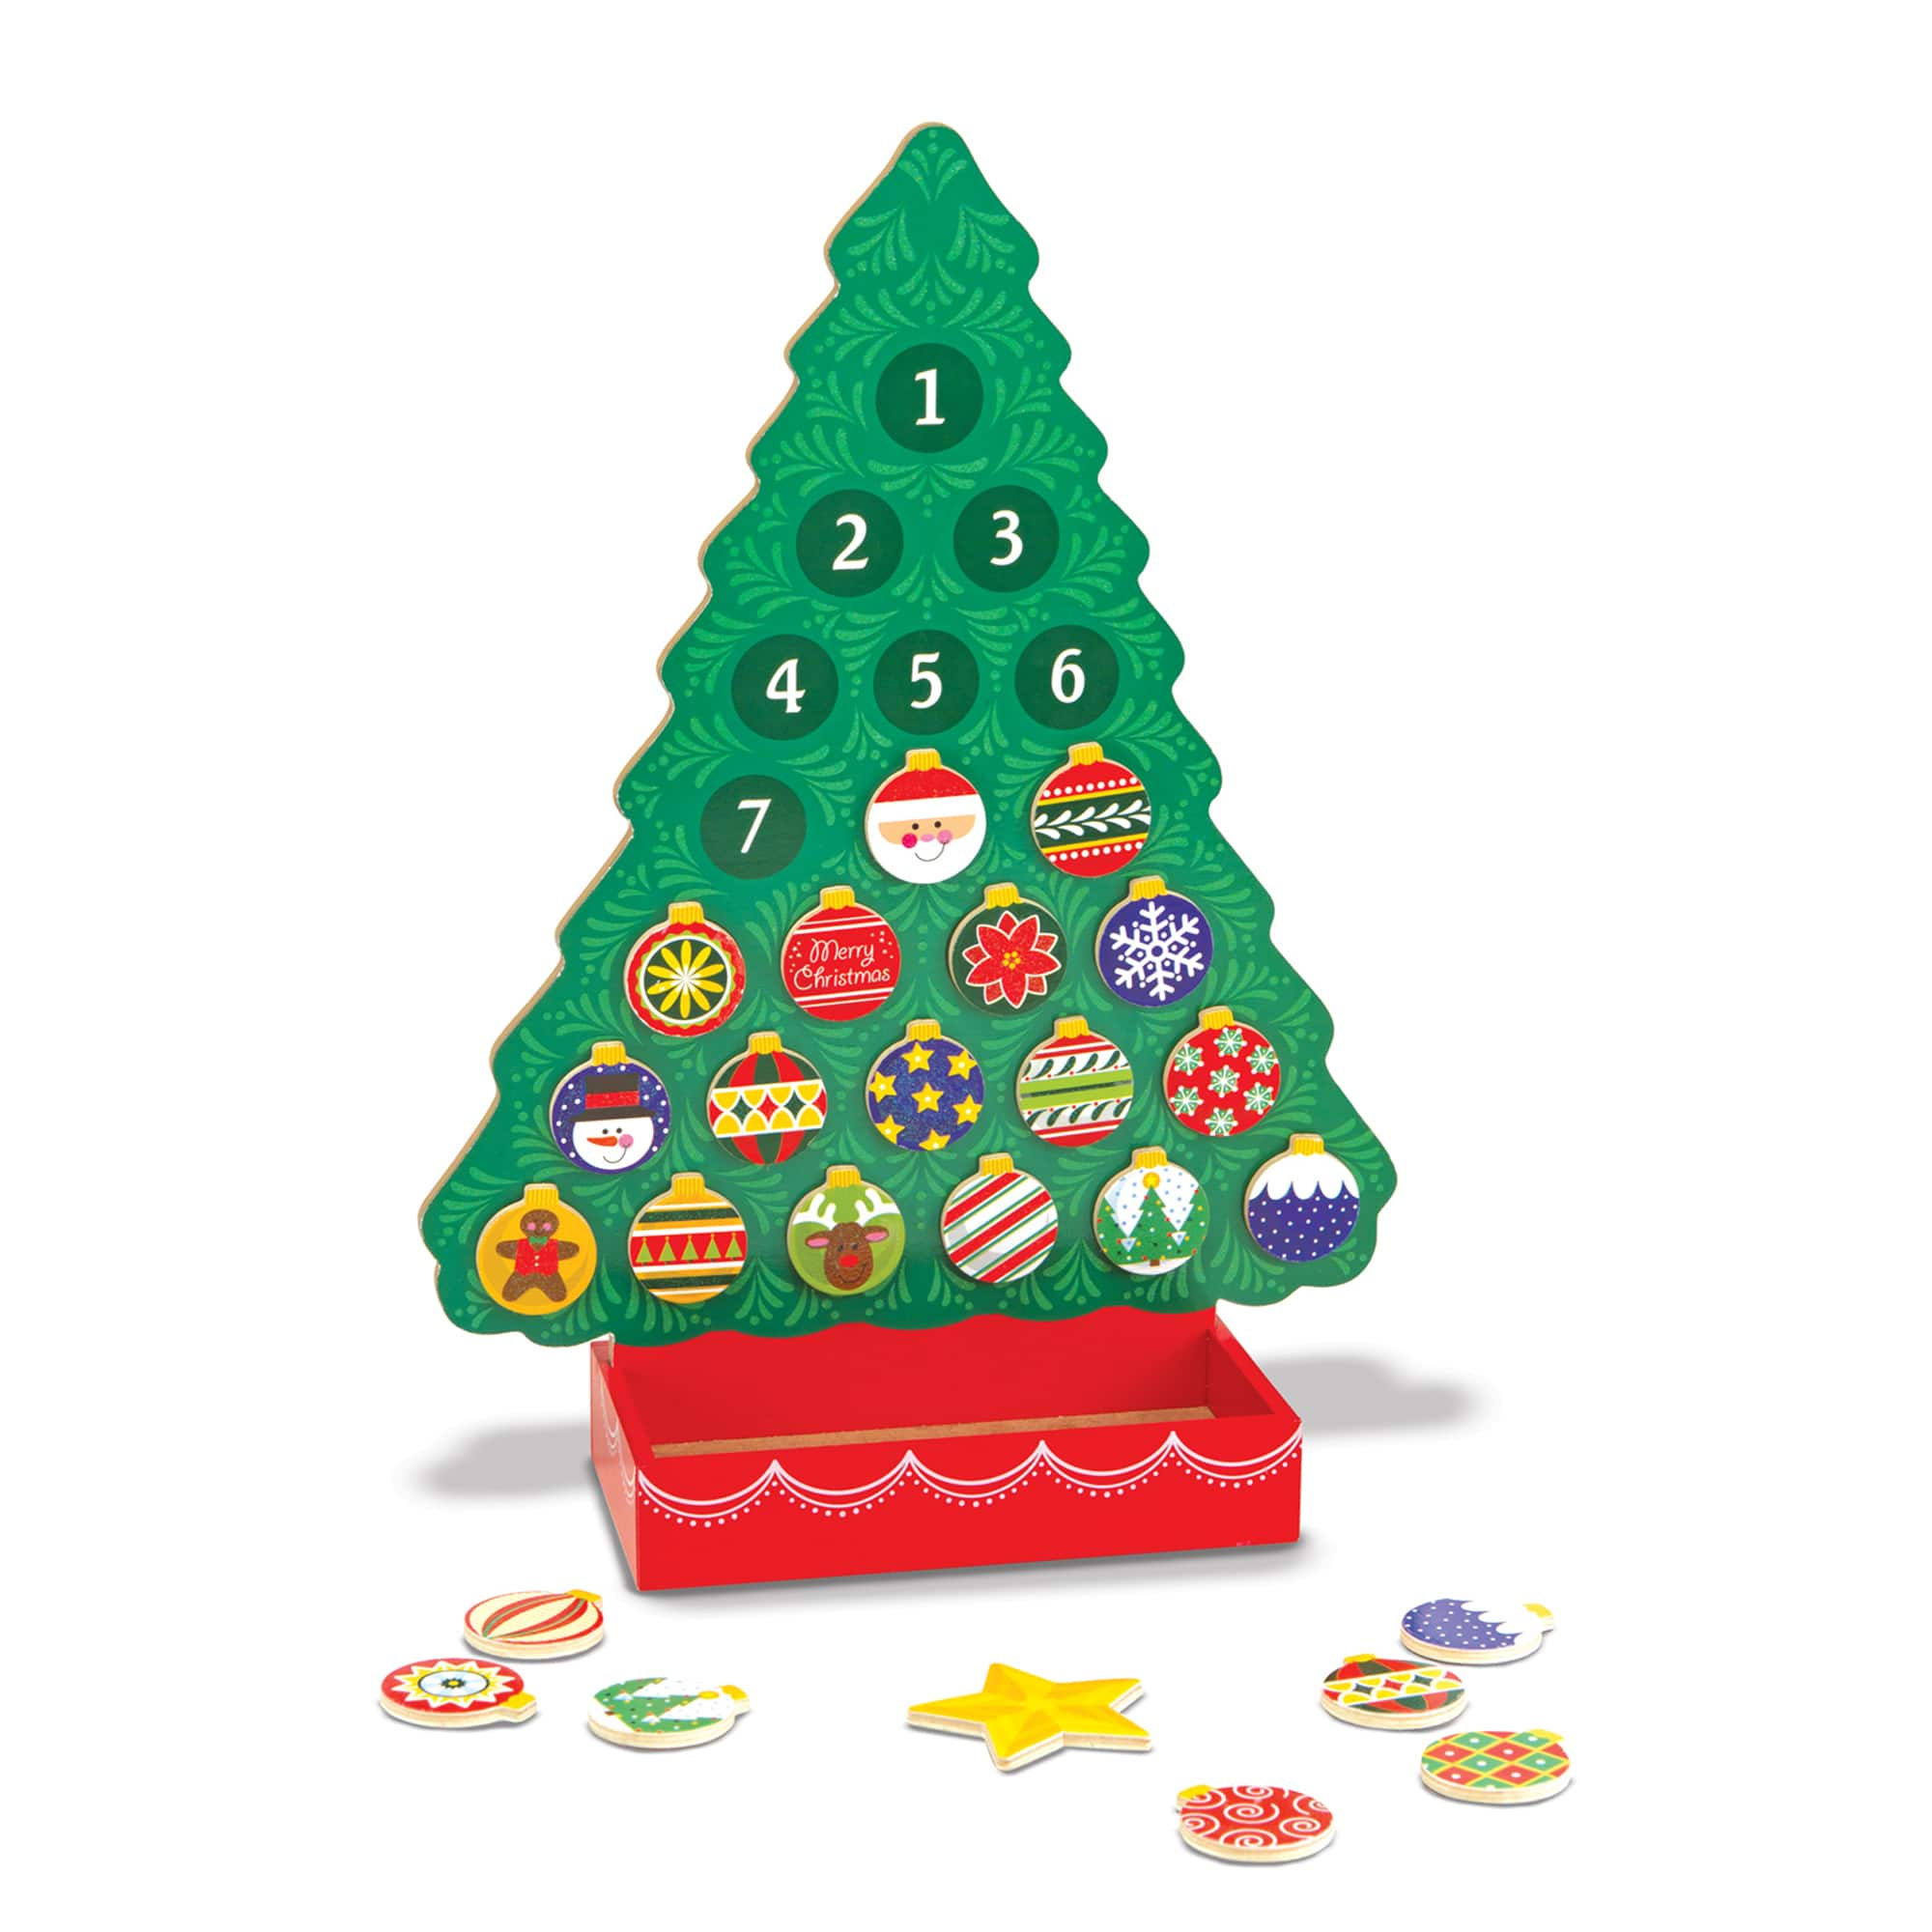 Melissa & Doug: Countdown to Christmas Wooden Advent Calendar $10.49, Stainless Steel Pots & Pans Play Set $14.25 & more + free S/H w/ Prime